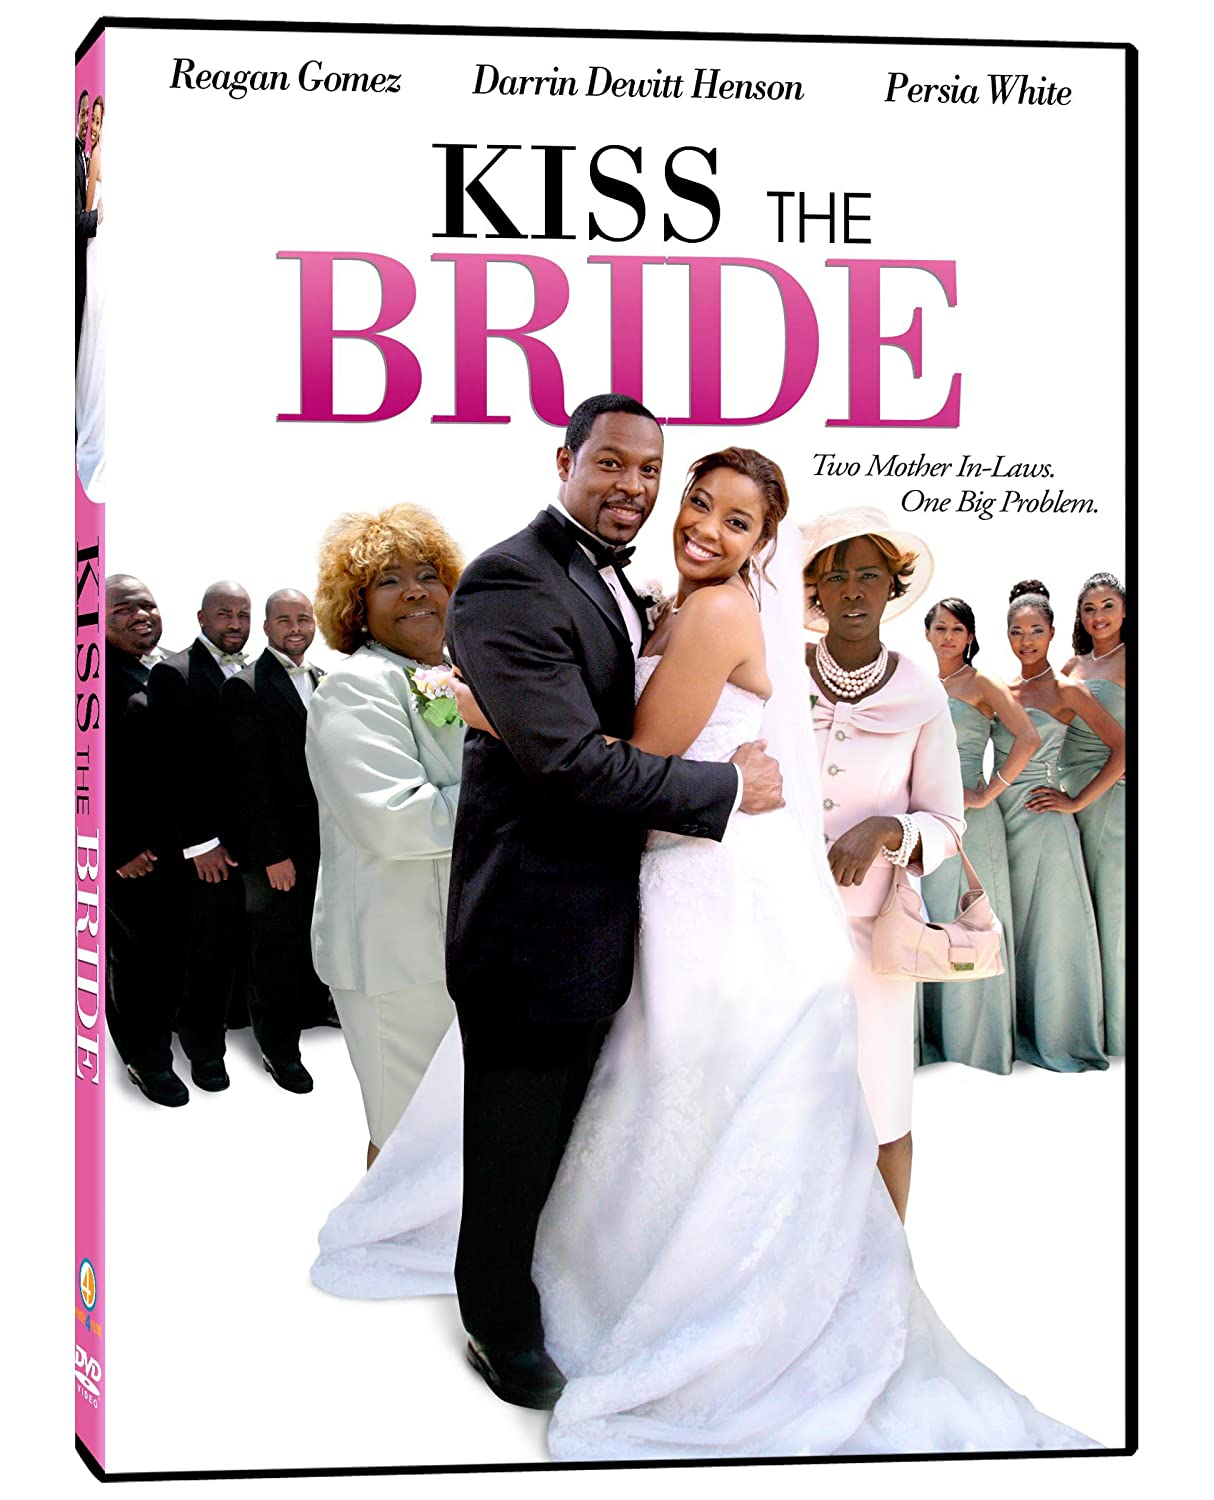 The Missing Bridegroom - actors and features of the film